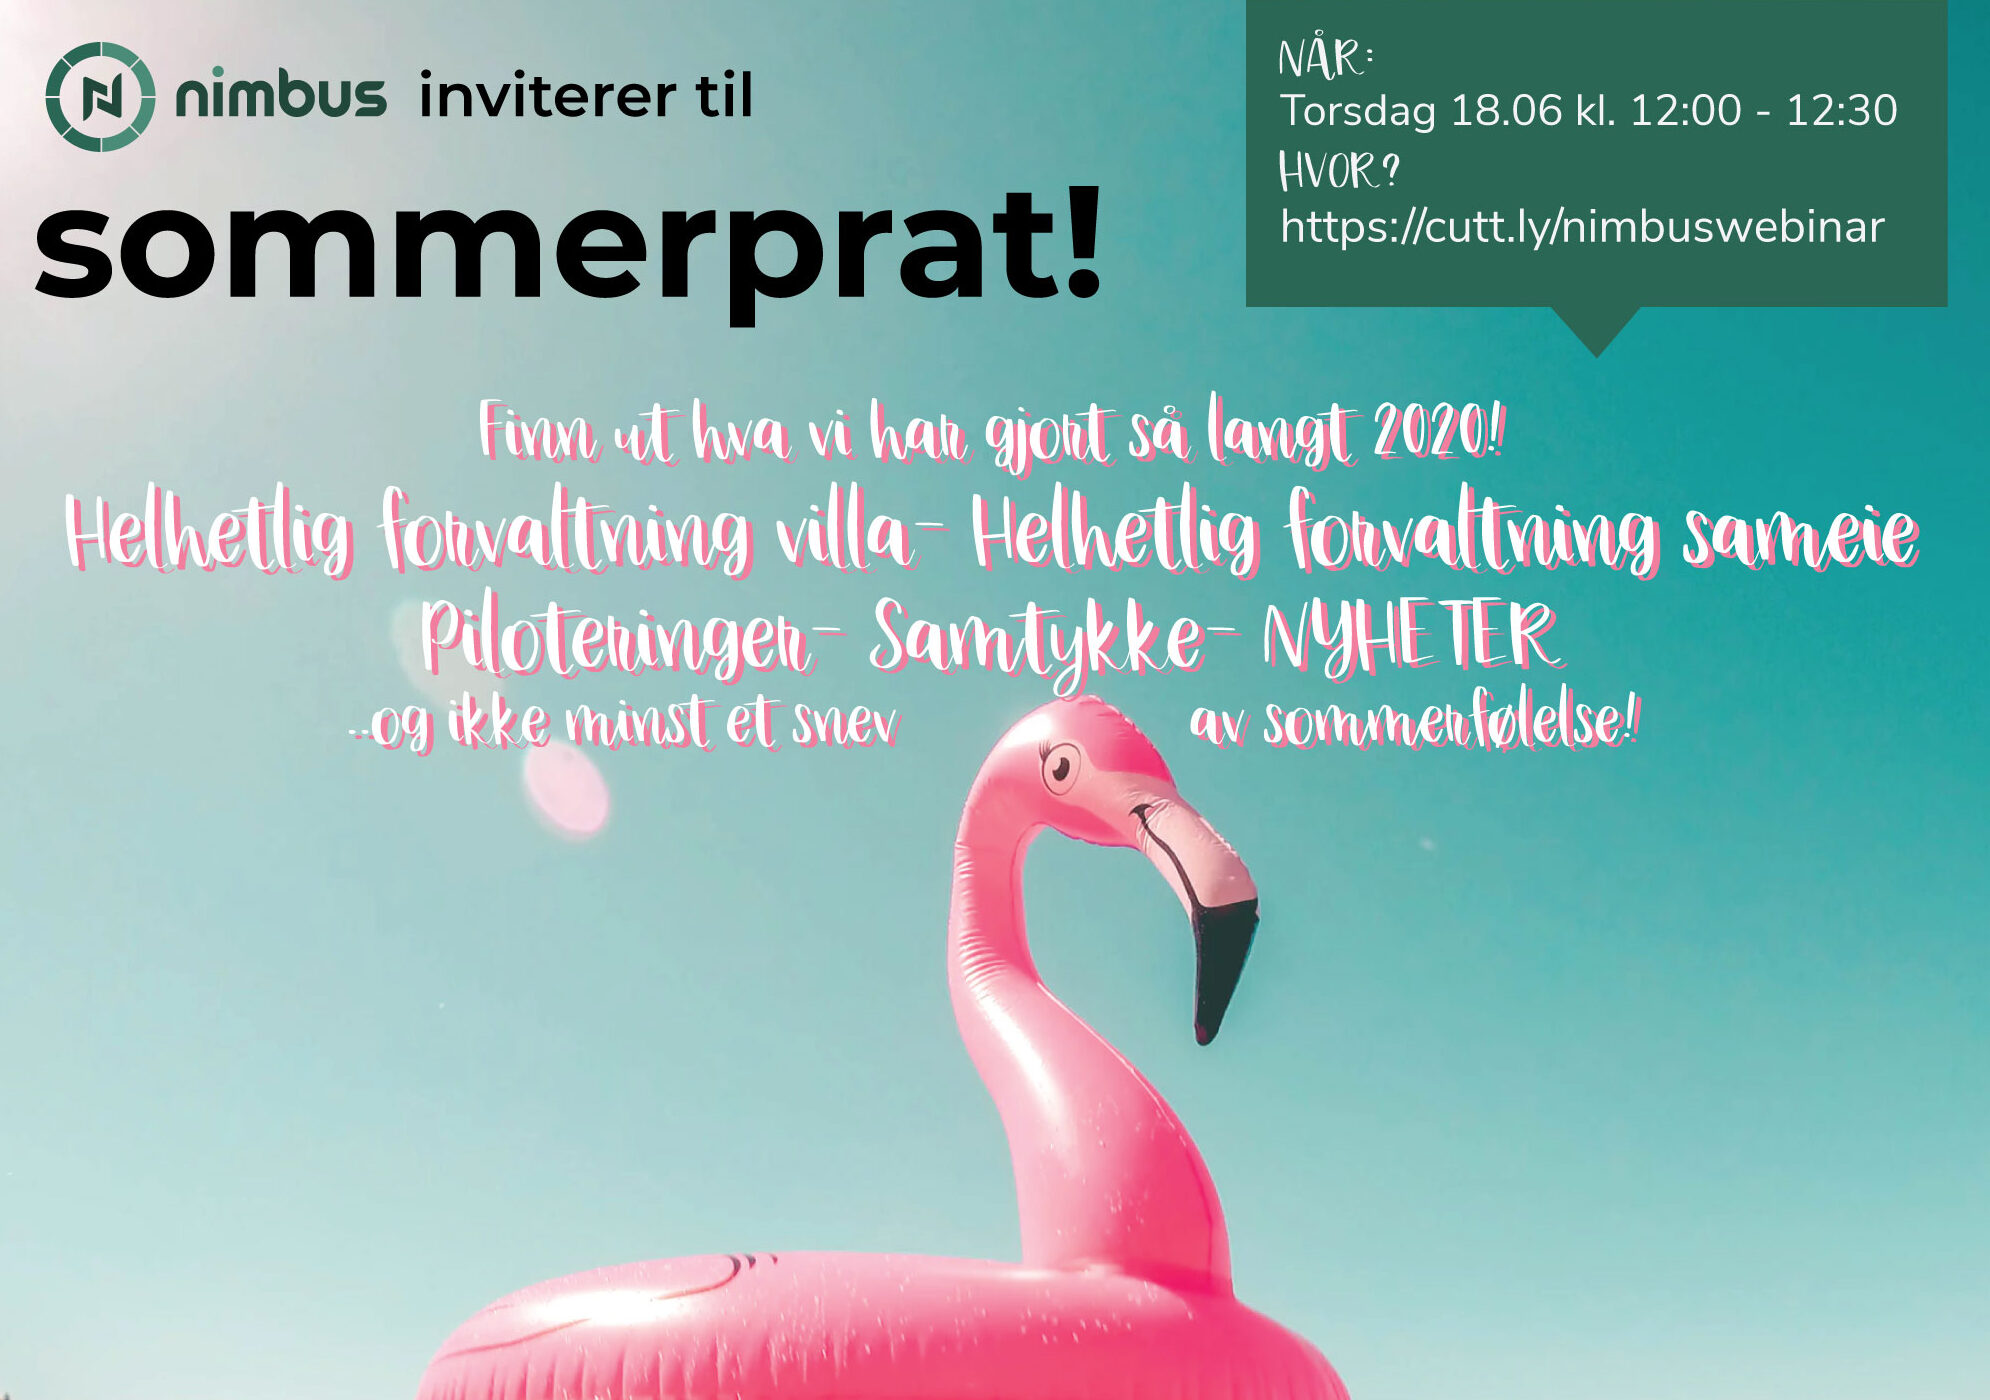 Sommerprat for Nimbus